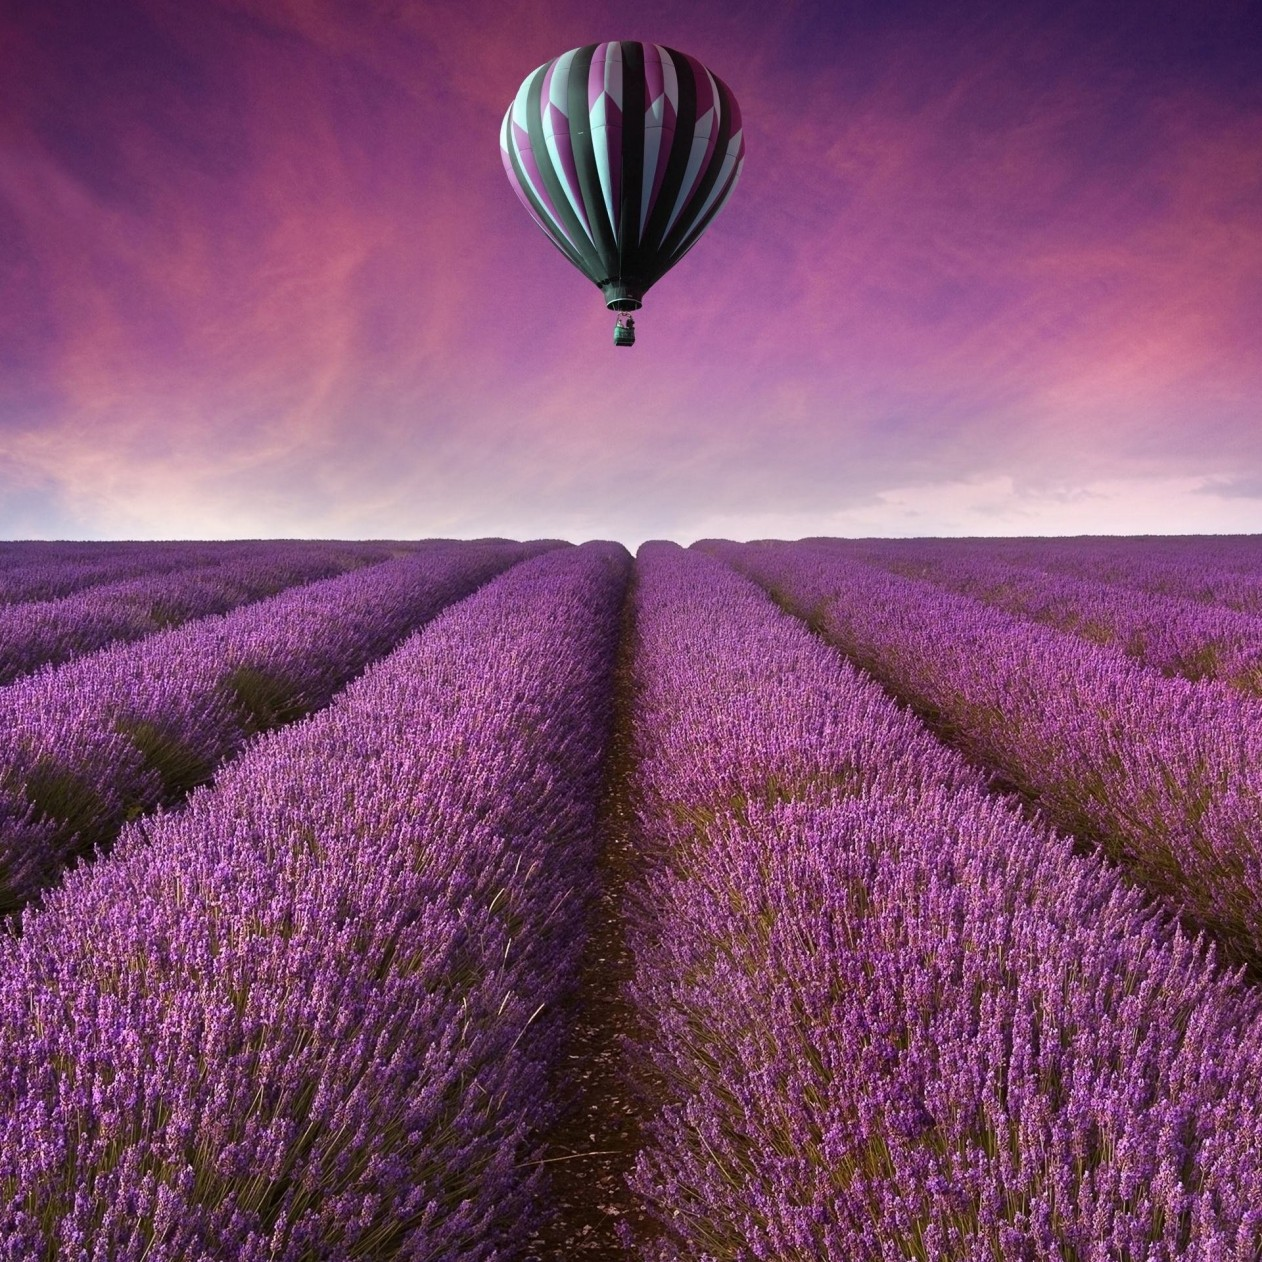 Hot Air Balloon Over Lavender Field Wallpaper for Apple iPad mini